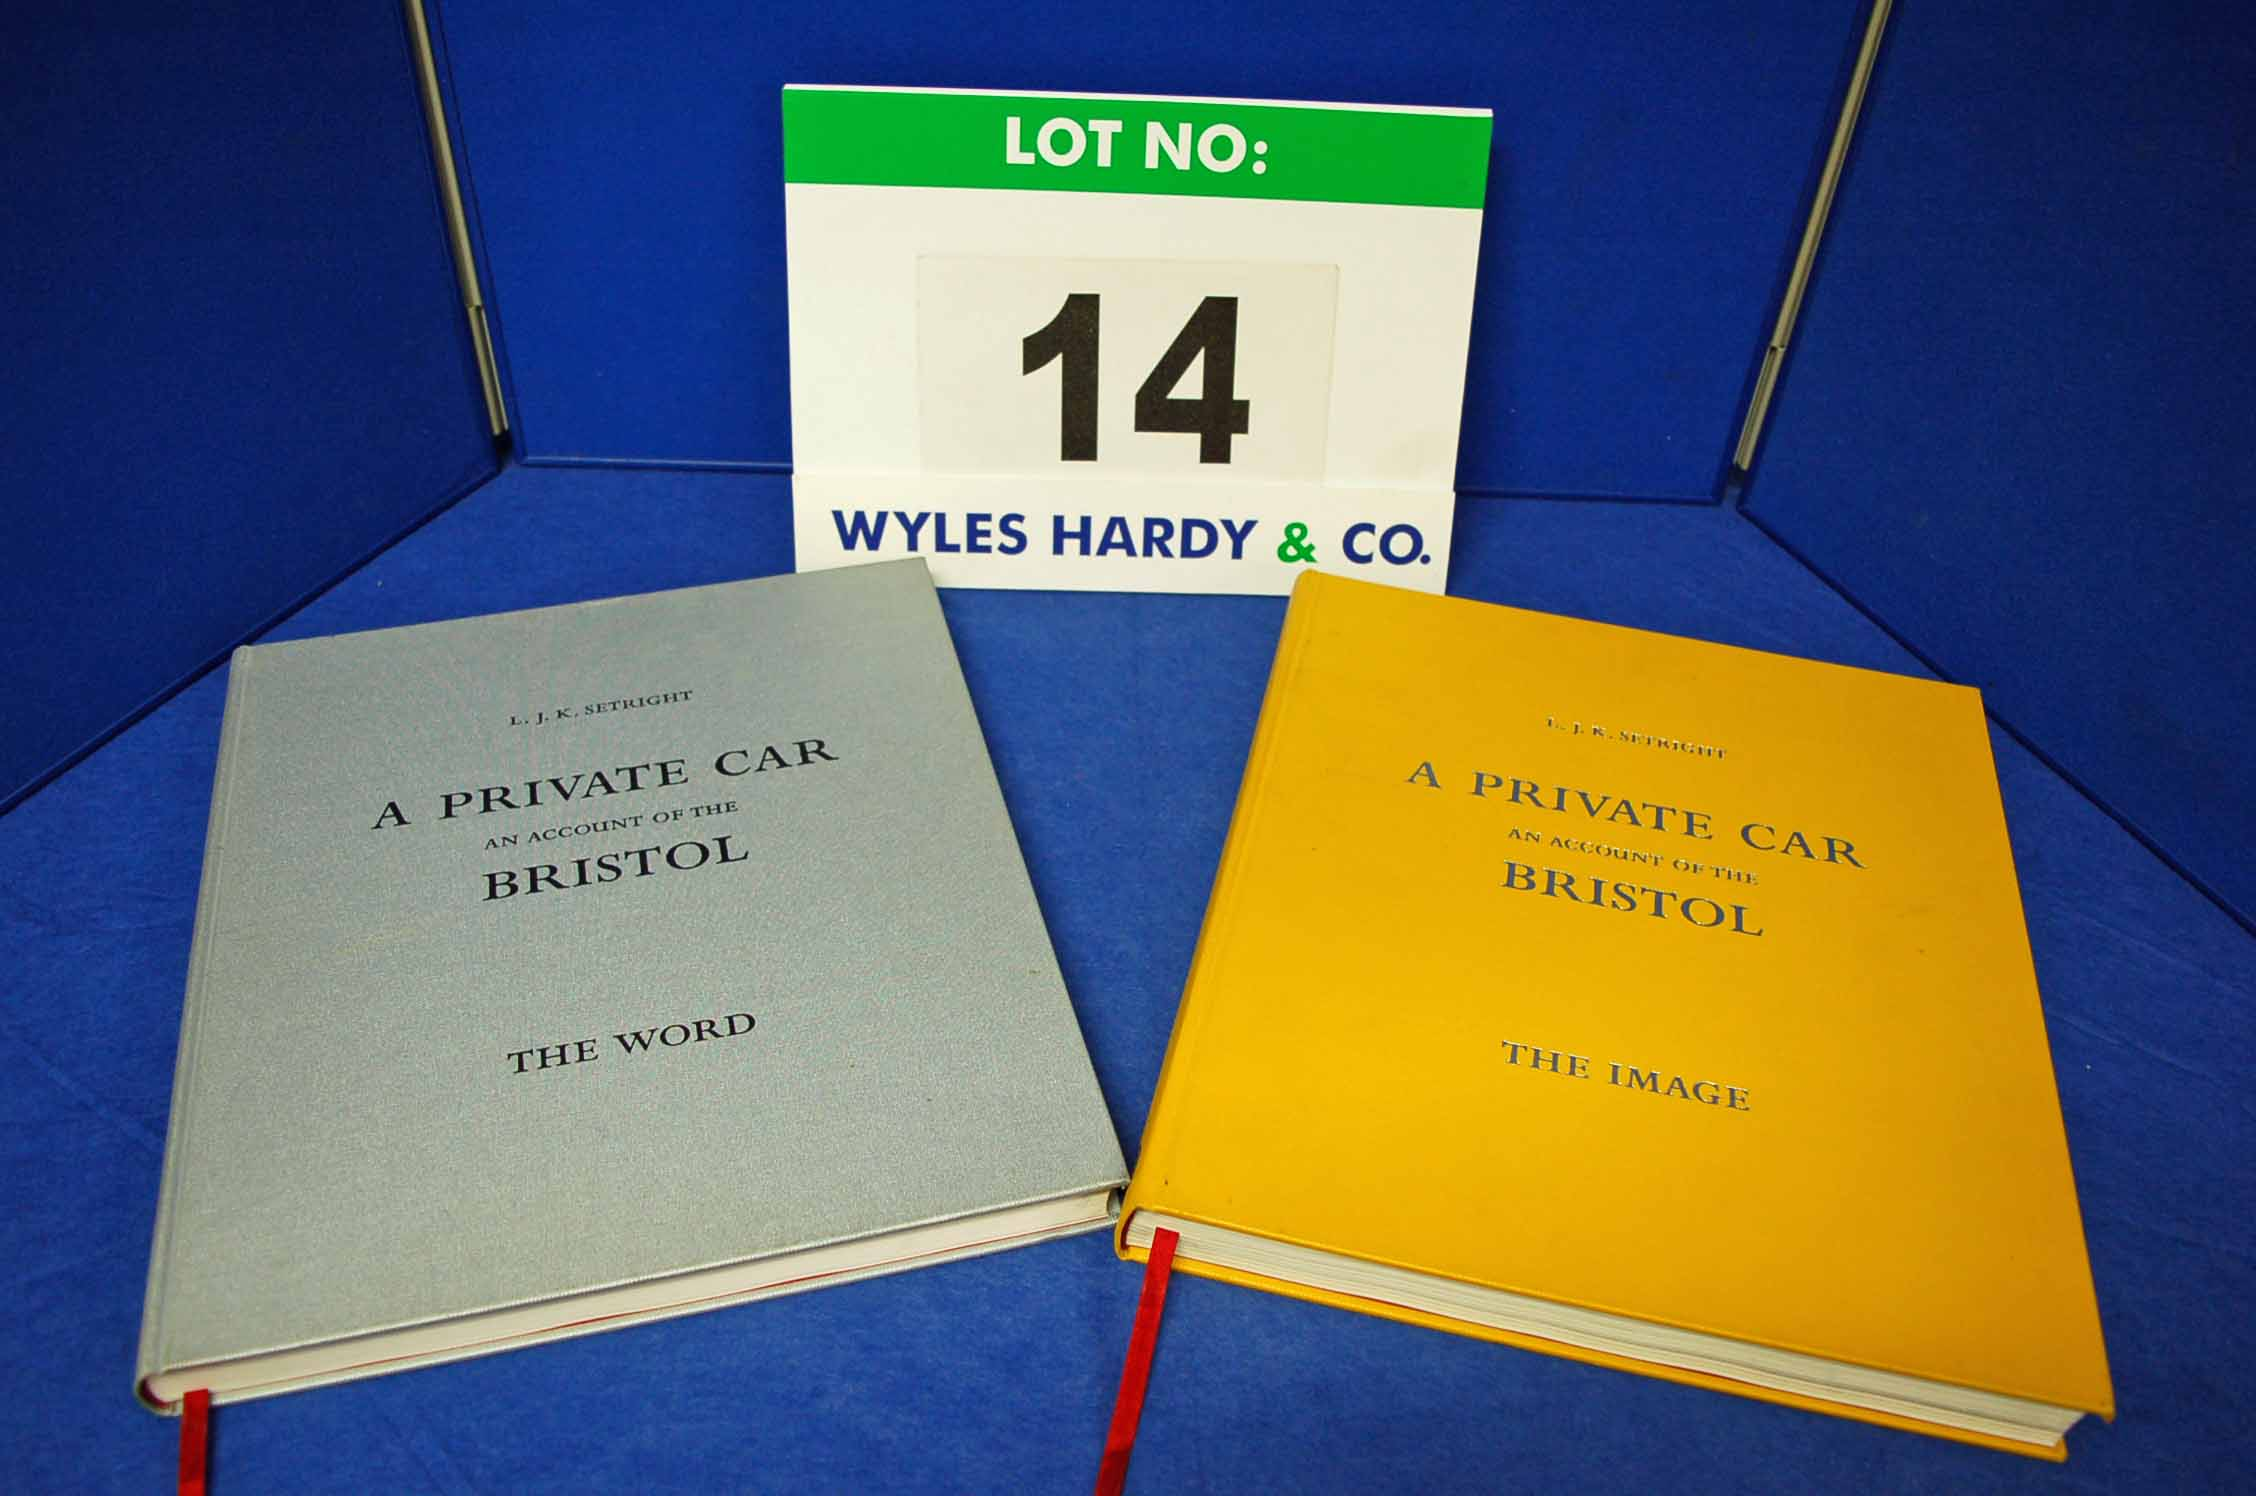 A Copy (Two Volumes) of A Private Car, an Account of the Bristol by LJK Setright comprising 'The